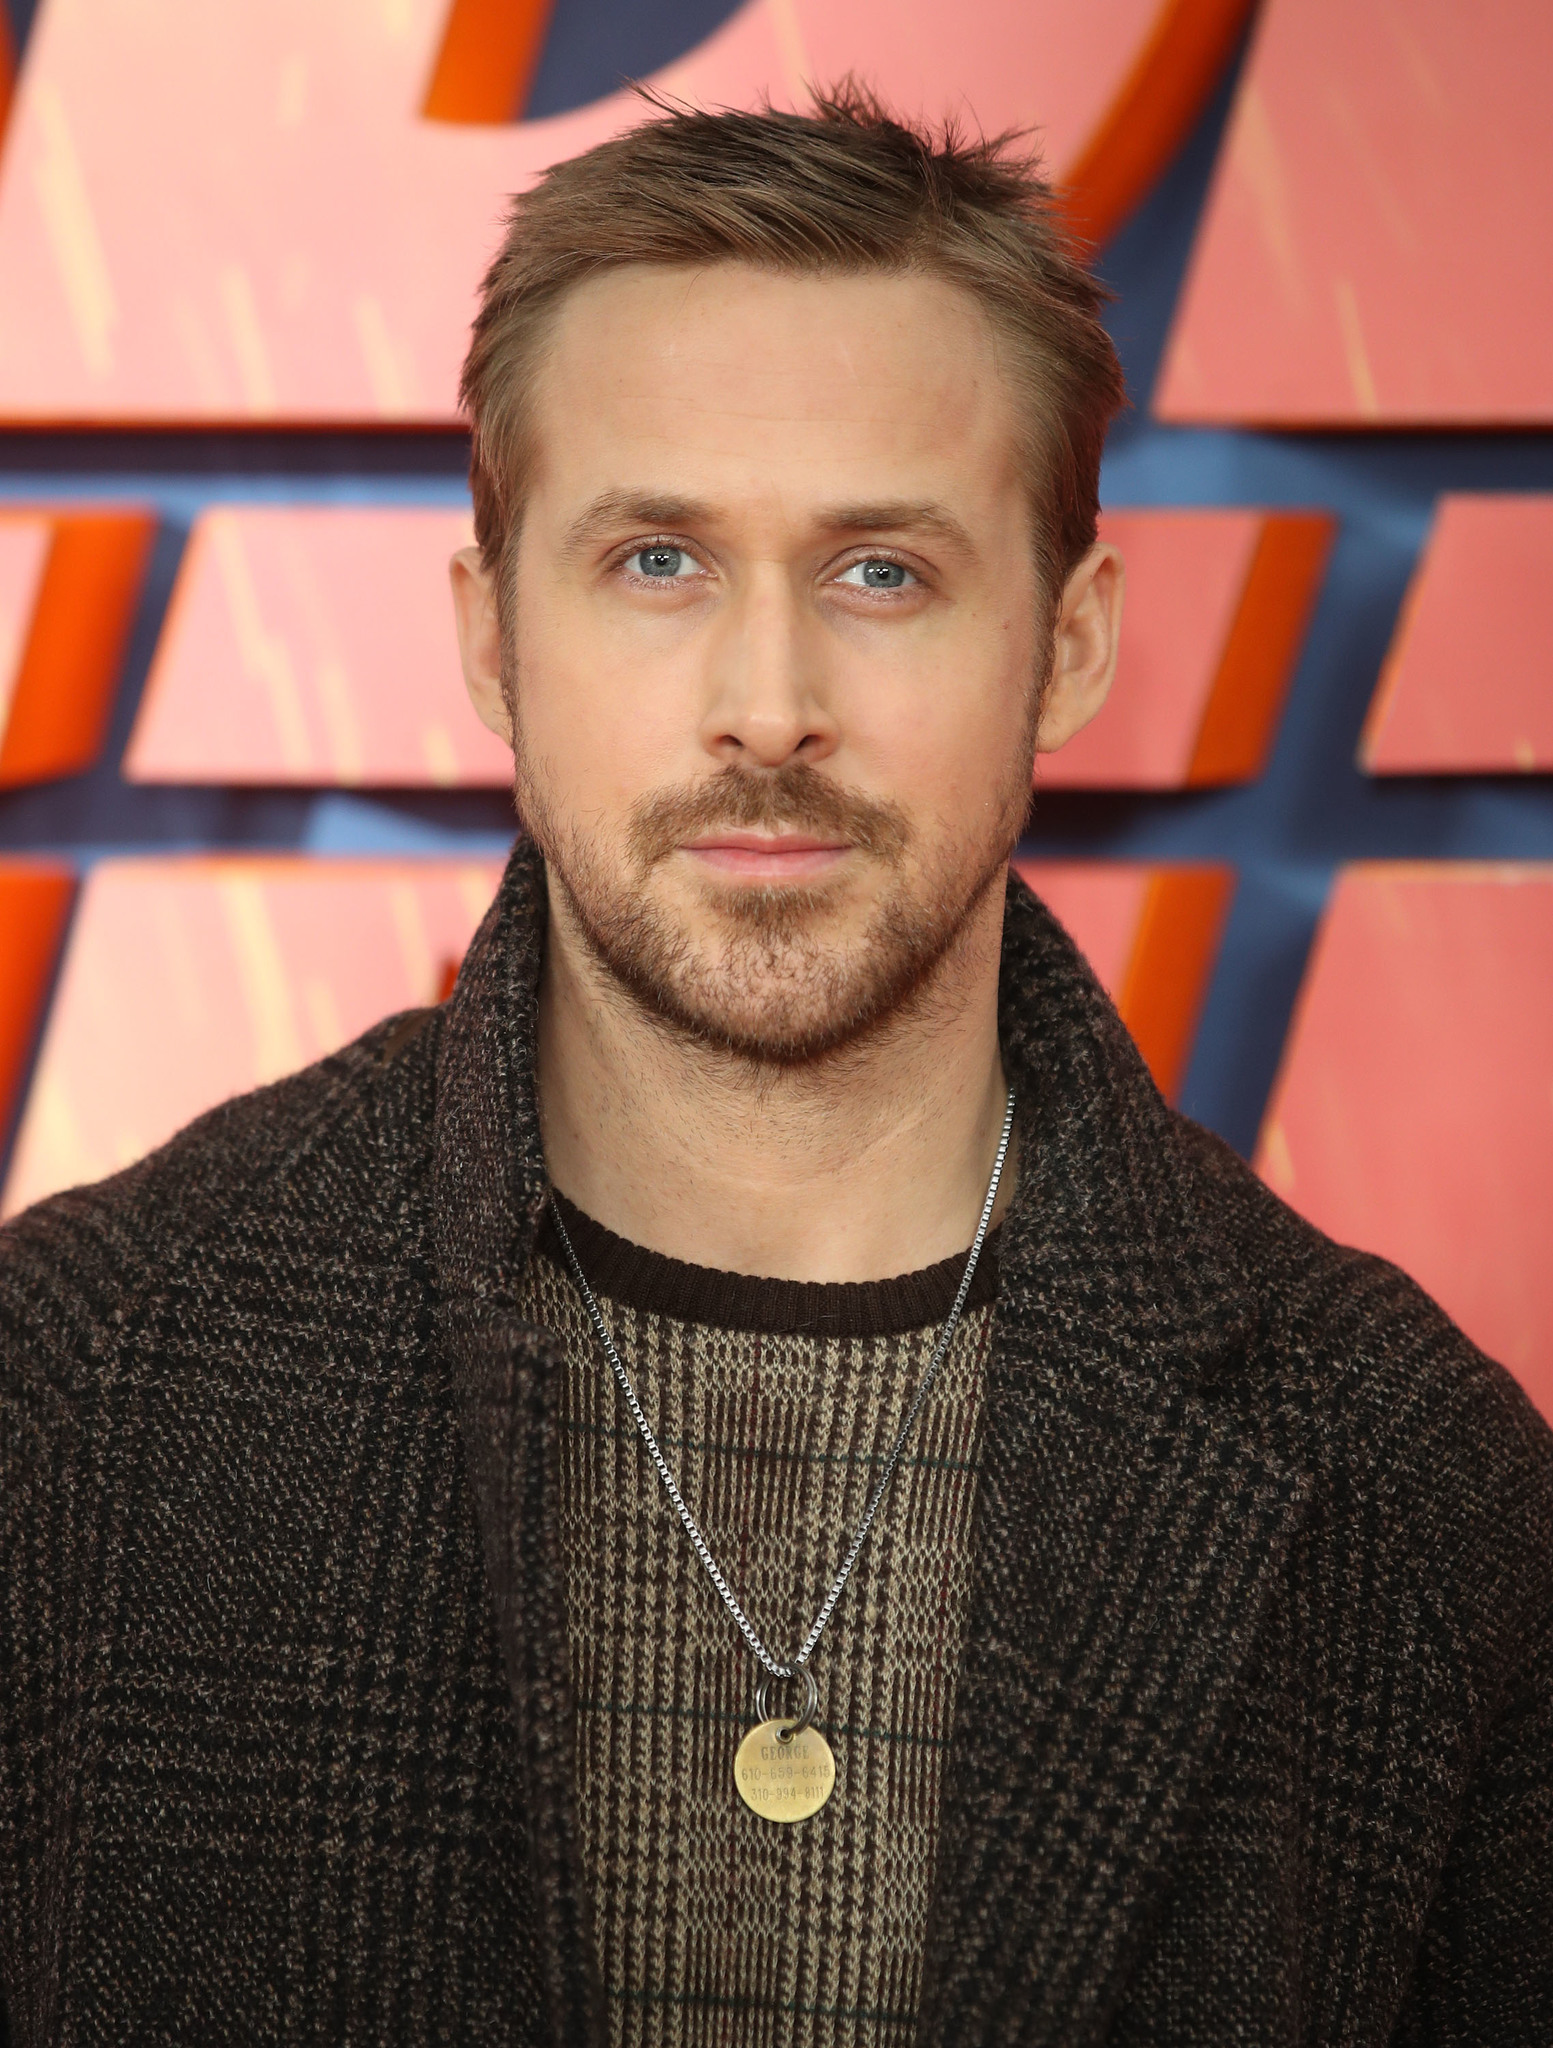 Ryan Gosling at an event for Blade Runner 2049 (2017)